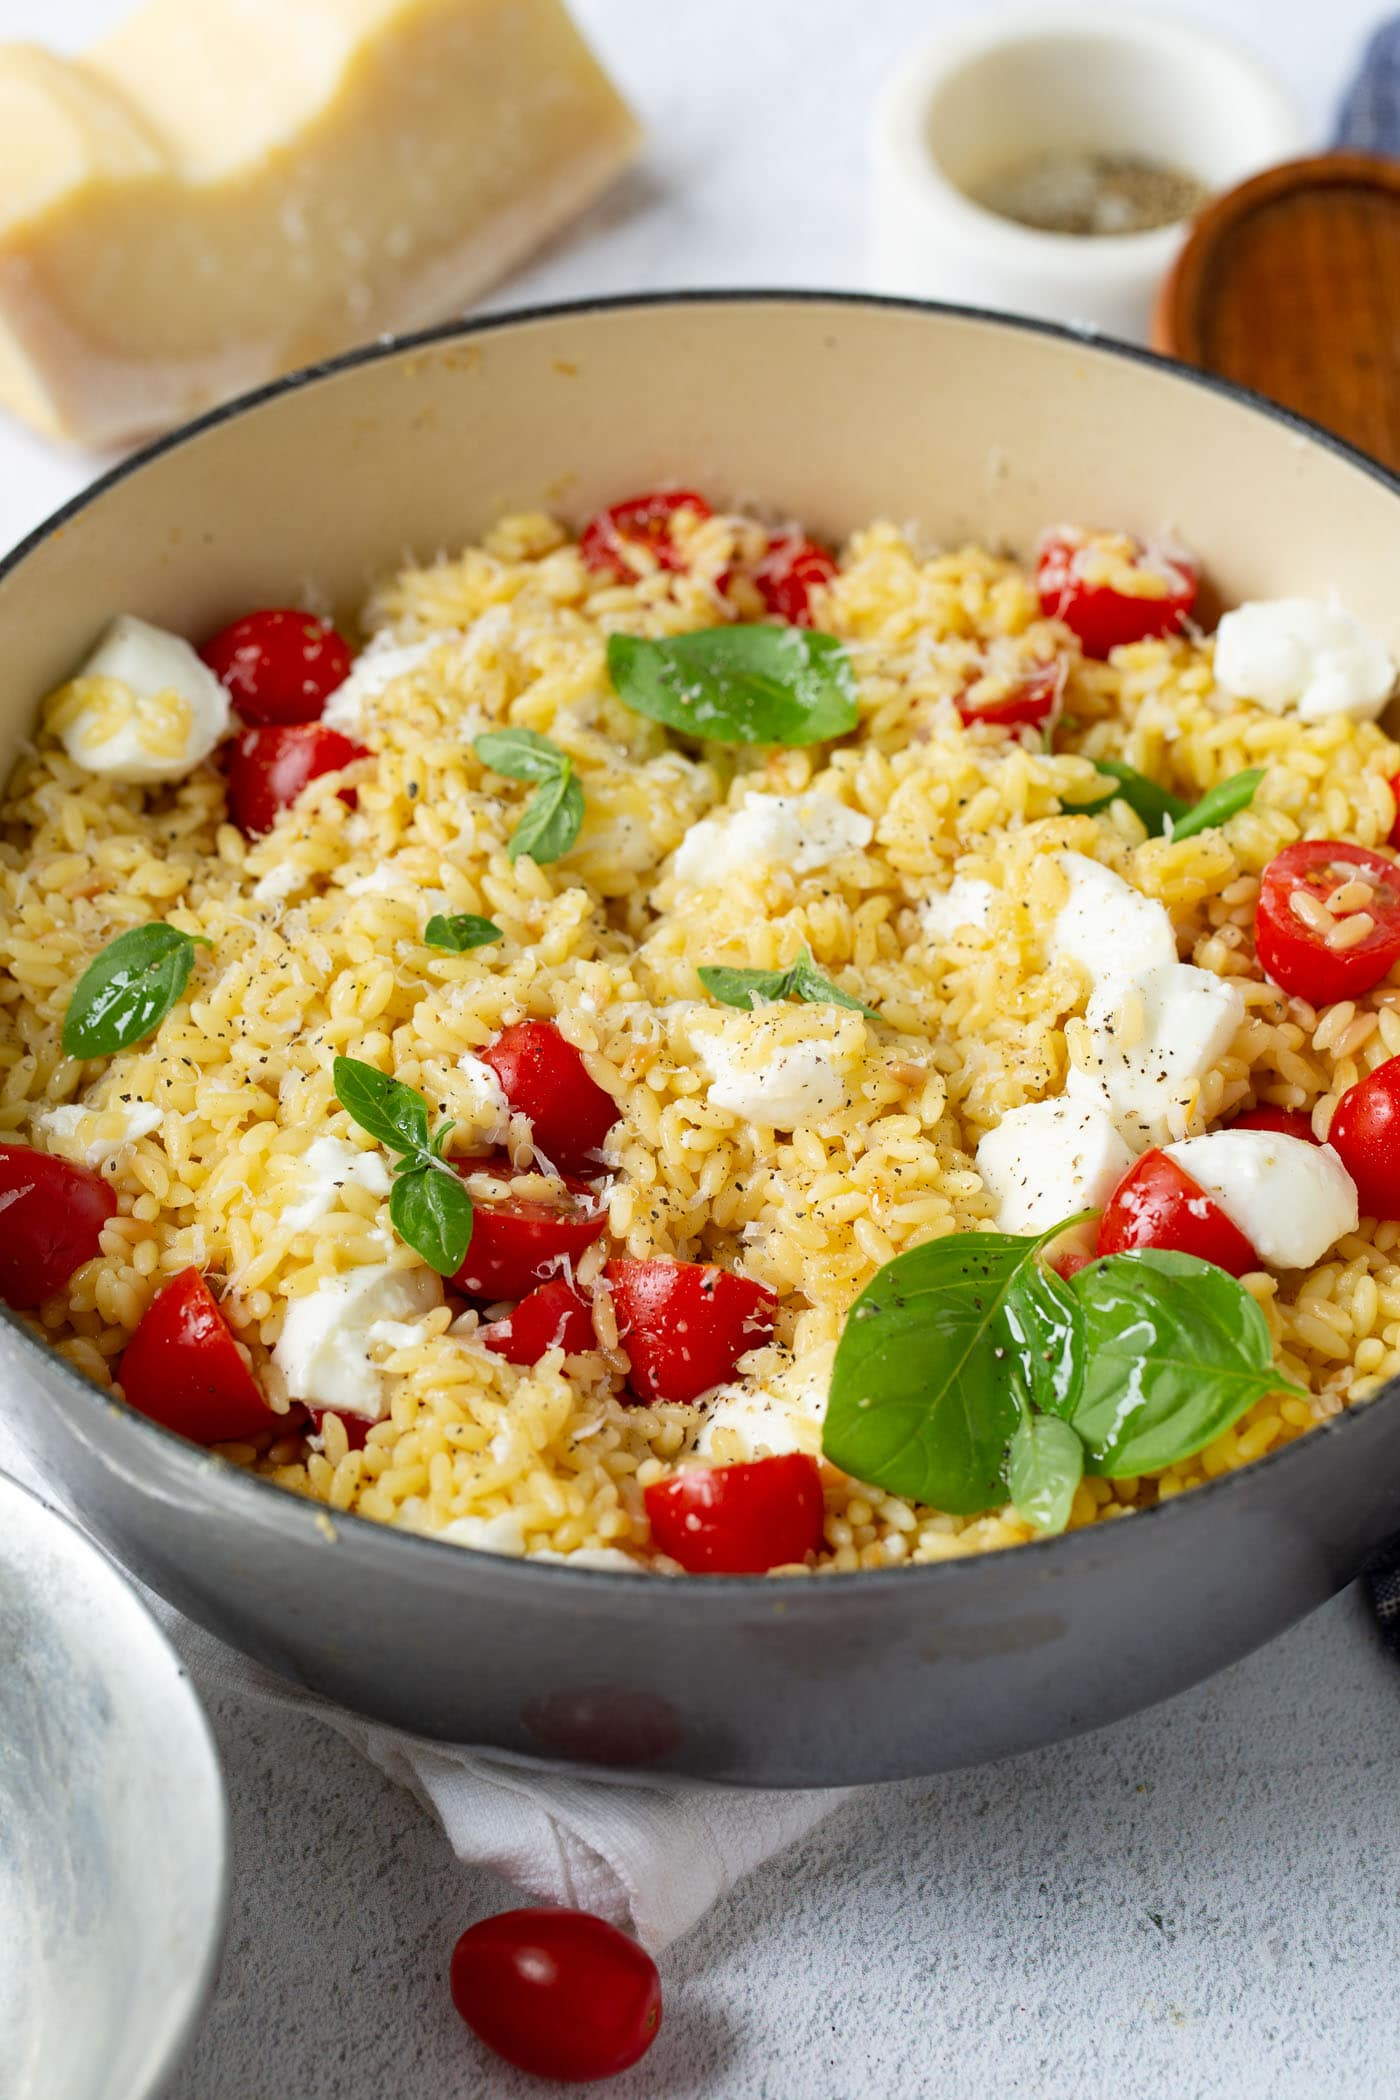 Caprese orzo salad in a larch serving bowl. There are bright red tomatoes, fresh green basil and chunks of mozzarella cheese. A few tomatoes, a brick of parmesan cheese, and a container of salt are on the table by the salad.